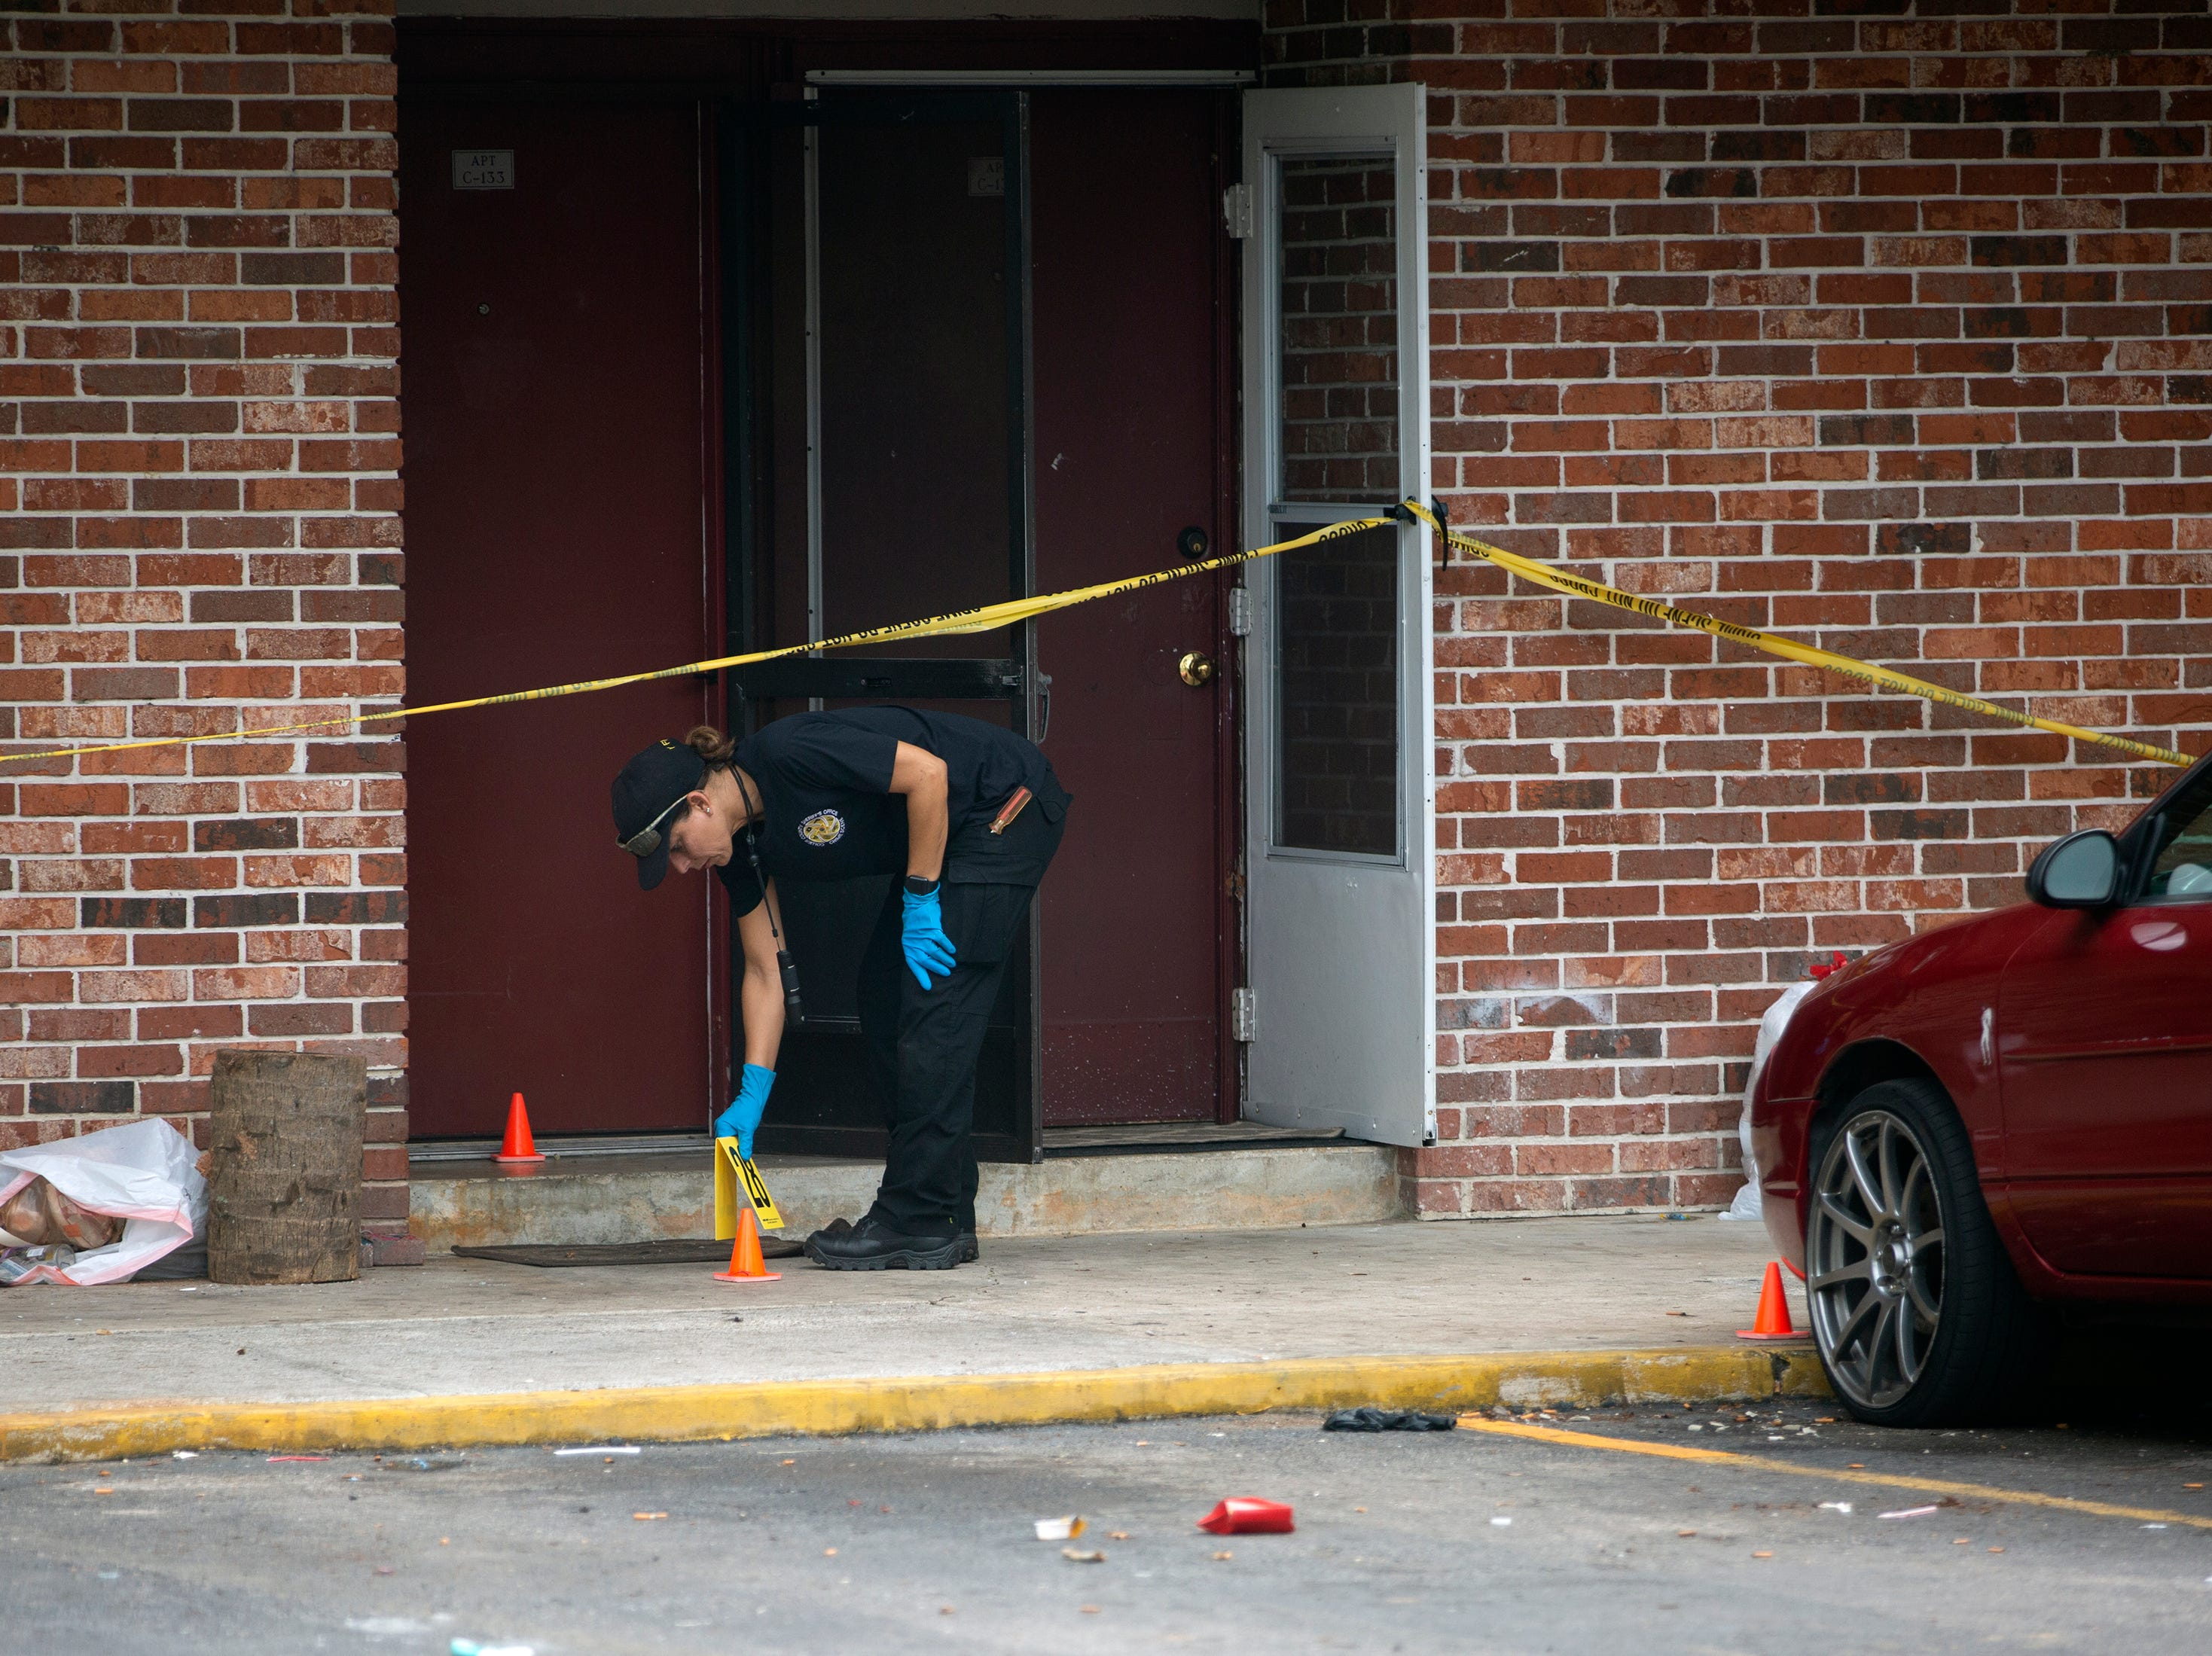 Crime scene investigators with the Collier County Sheriff's Office process evidence Thursday, Jan. 3, 2019 at a condominium complex in the 4000 block of Golden Gate Parkway near Collier Boulevard.